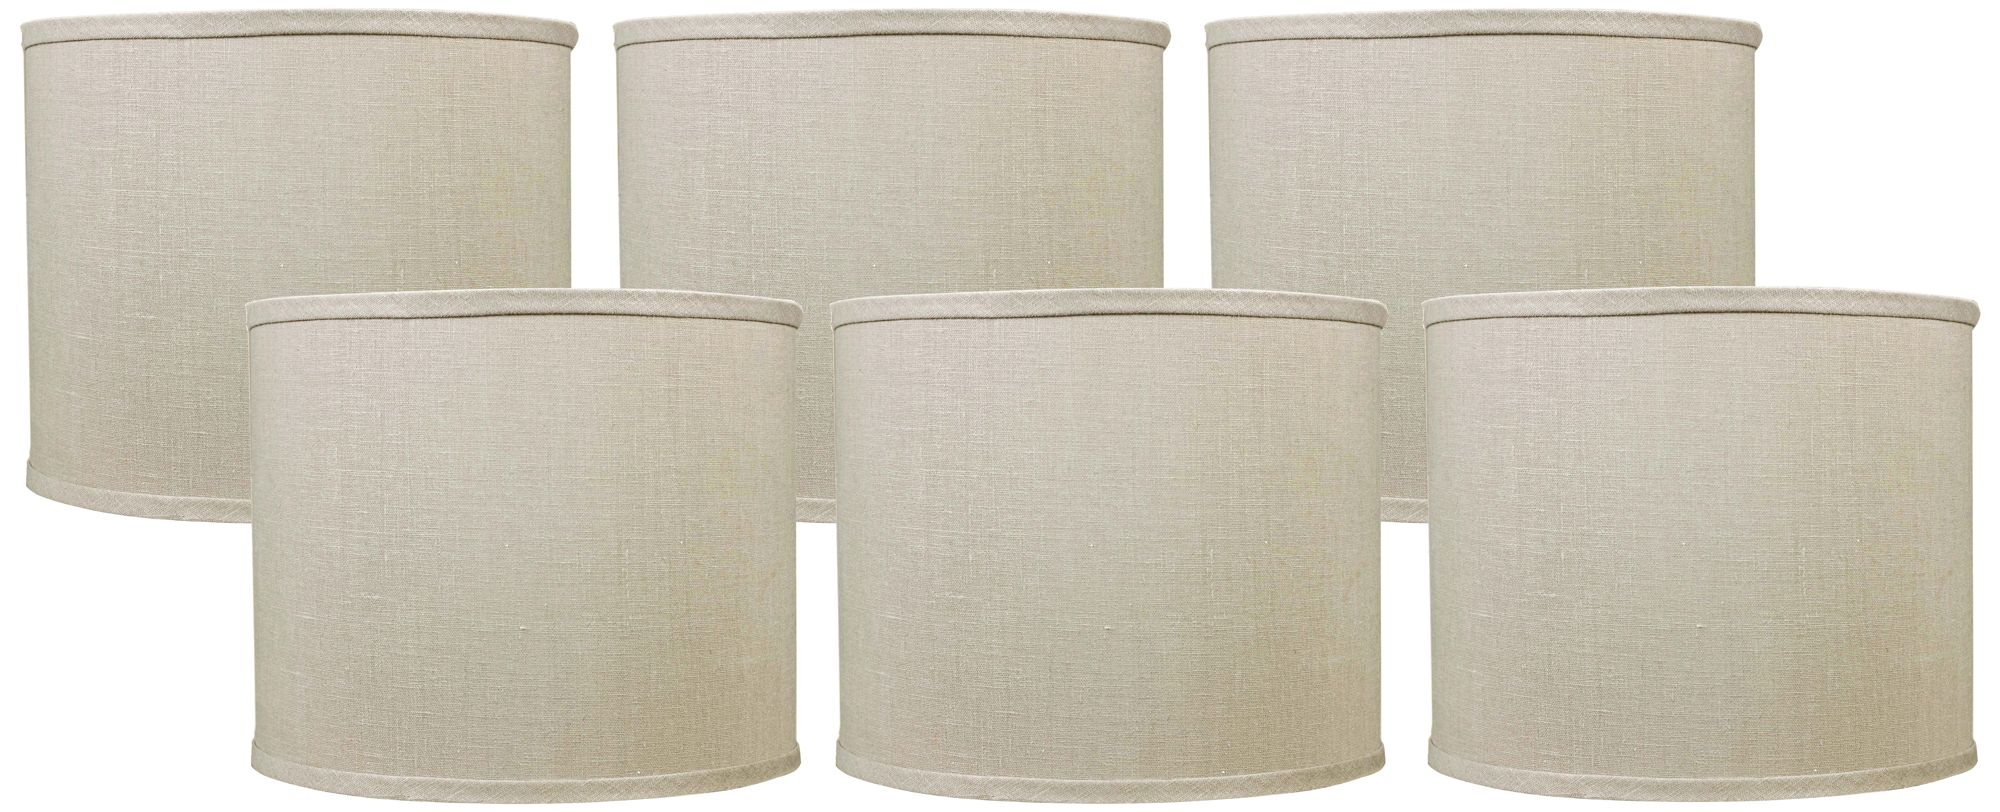 Bone Linen Set Of 6 Drum Lamp Shades 5x5x4.5 (Clip On)